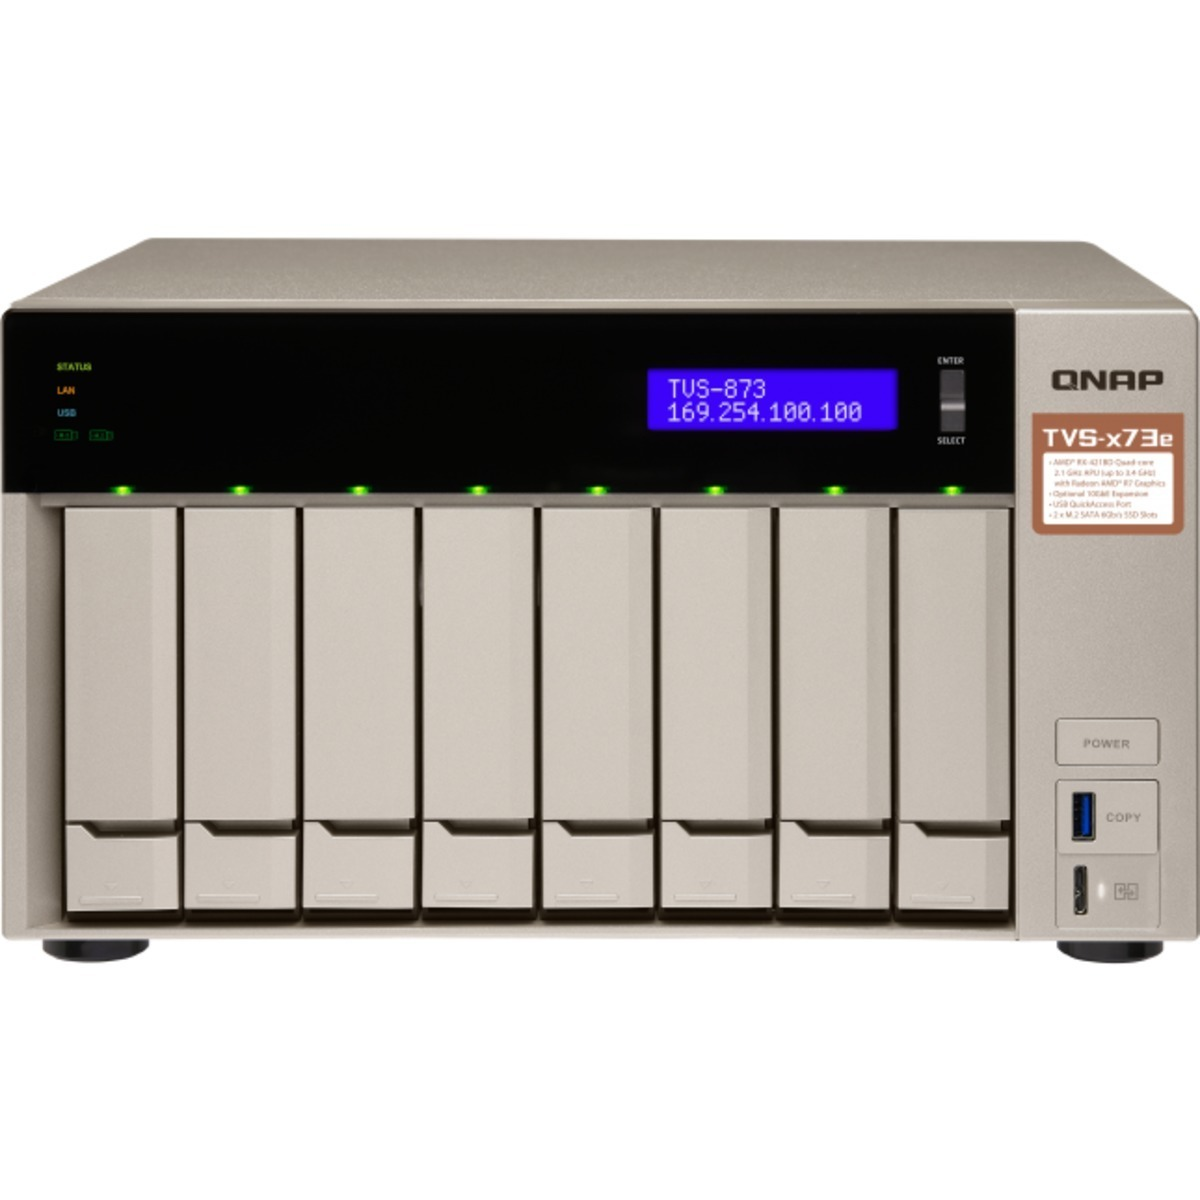 buy $2183 QNAP TVS-873e 24tb Desktop NAS - Network Attached Storage Device 8x3000gb Hitachi HGST Ultrastar 7K4000 HUS724030ALE640 3.5 7200rpm SATA 6Gb/s HDD ENTERPRISE Class Drives Installed - Burn-In Tested - nas headquarters buy network attached storage server device das new sale raid-5 free shipping usa TVS-873e